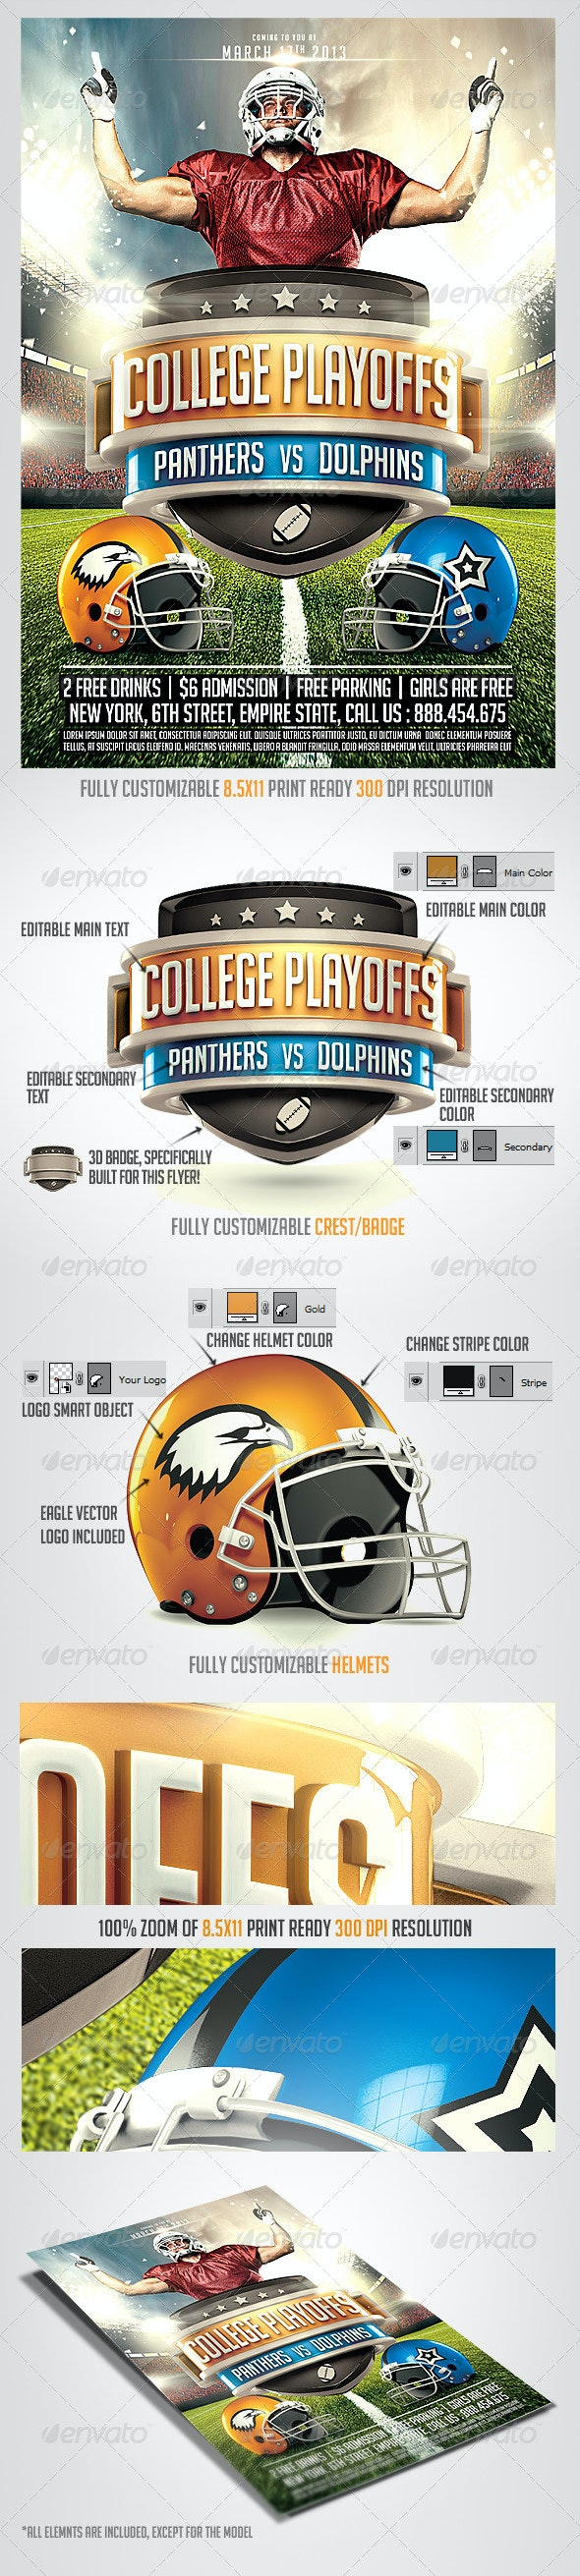 Football Big Game Flyer Template - Sports Events